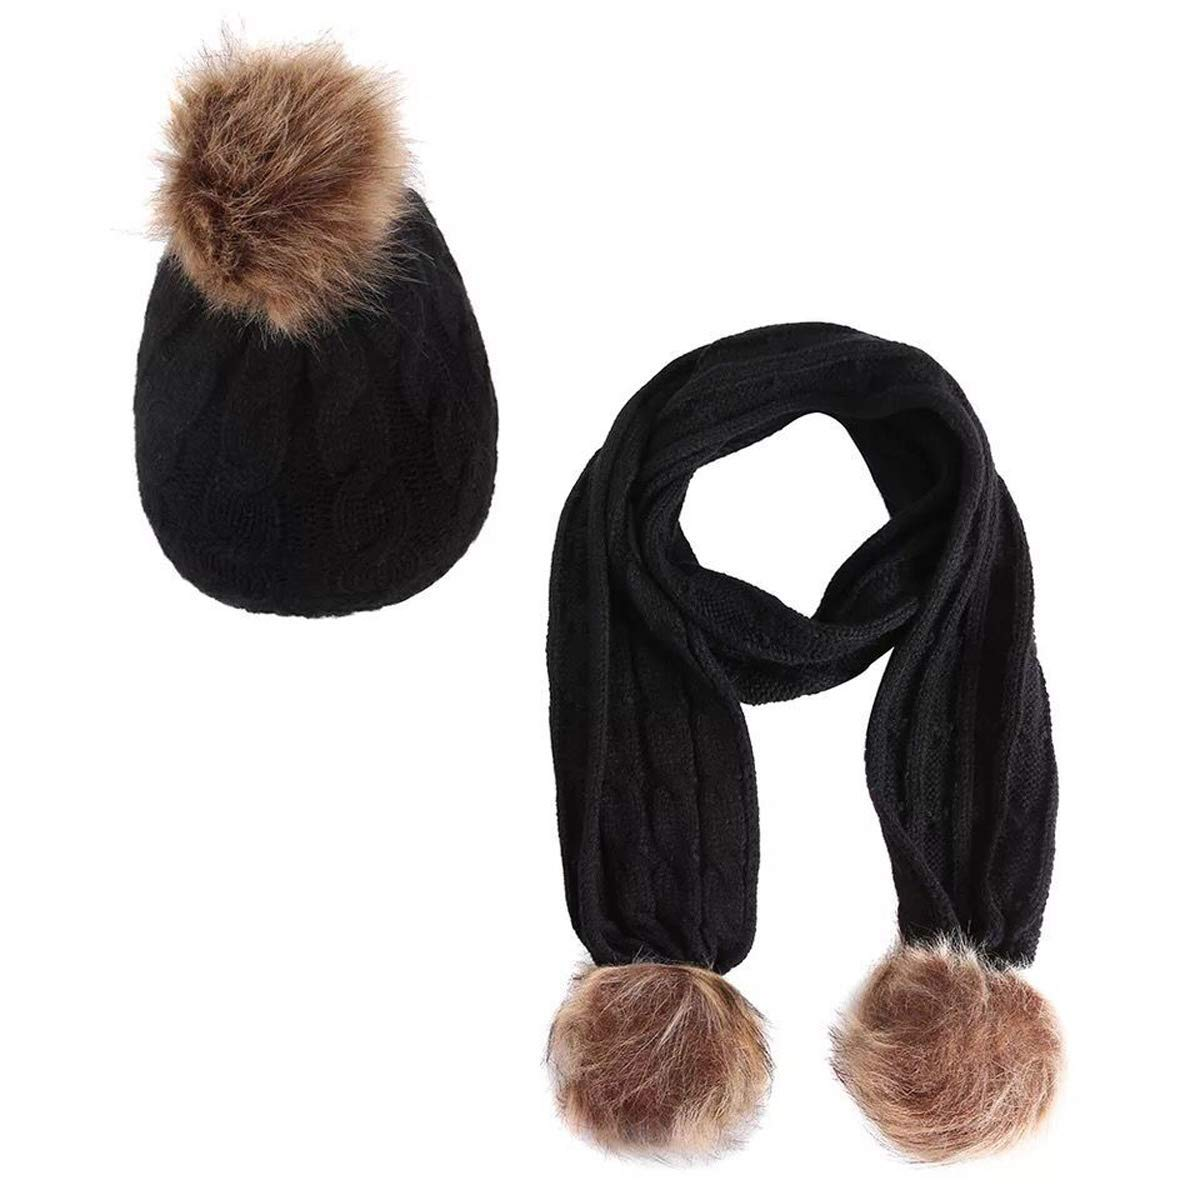 24074296f26 Get Quotations · Lanzom 2pcs Baby Girls Boys Winter Hat Scarf Set Infant  Toddler Knit Warm Cap + Scarf